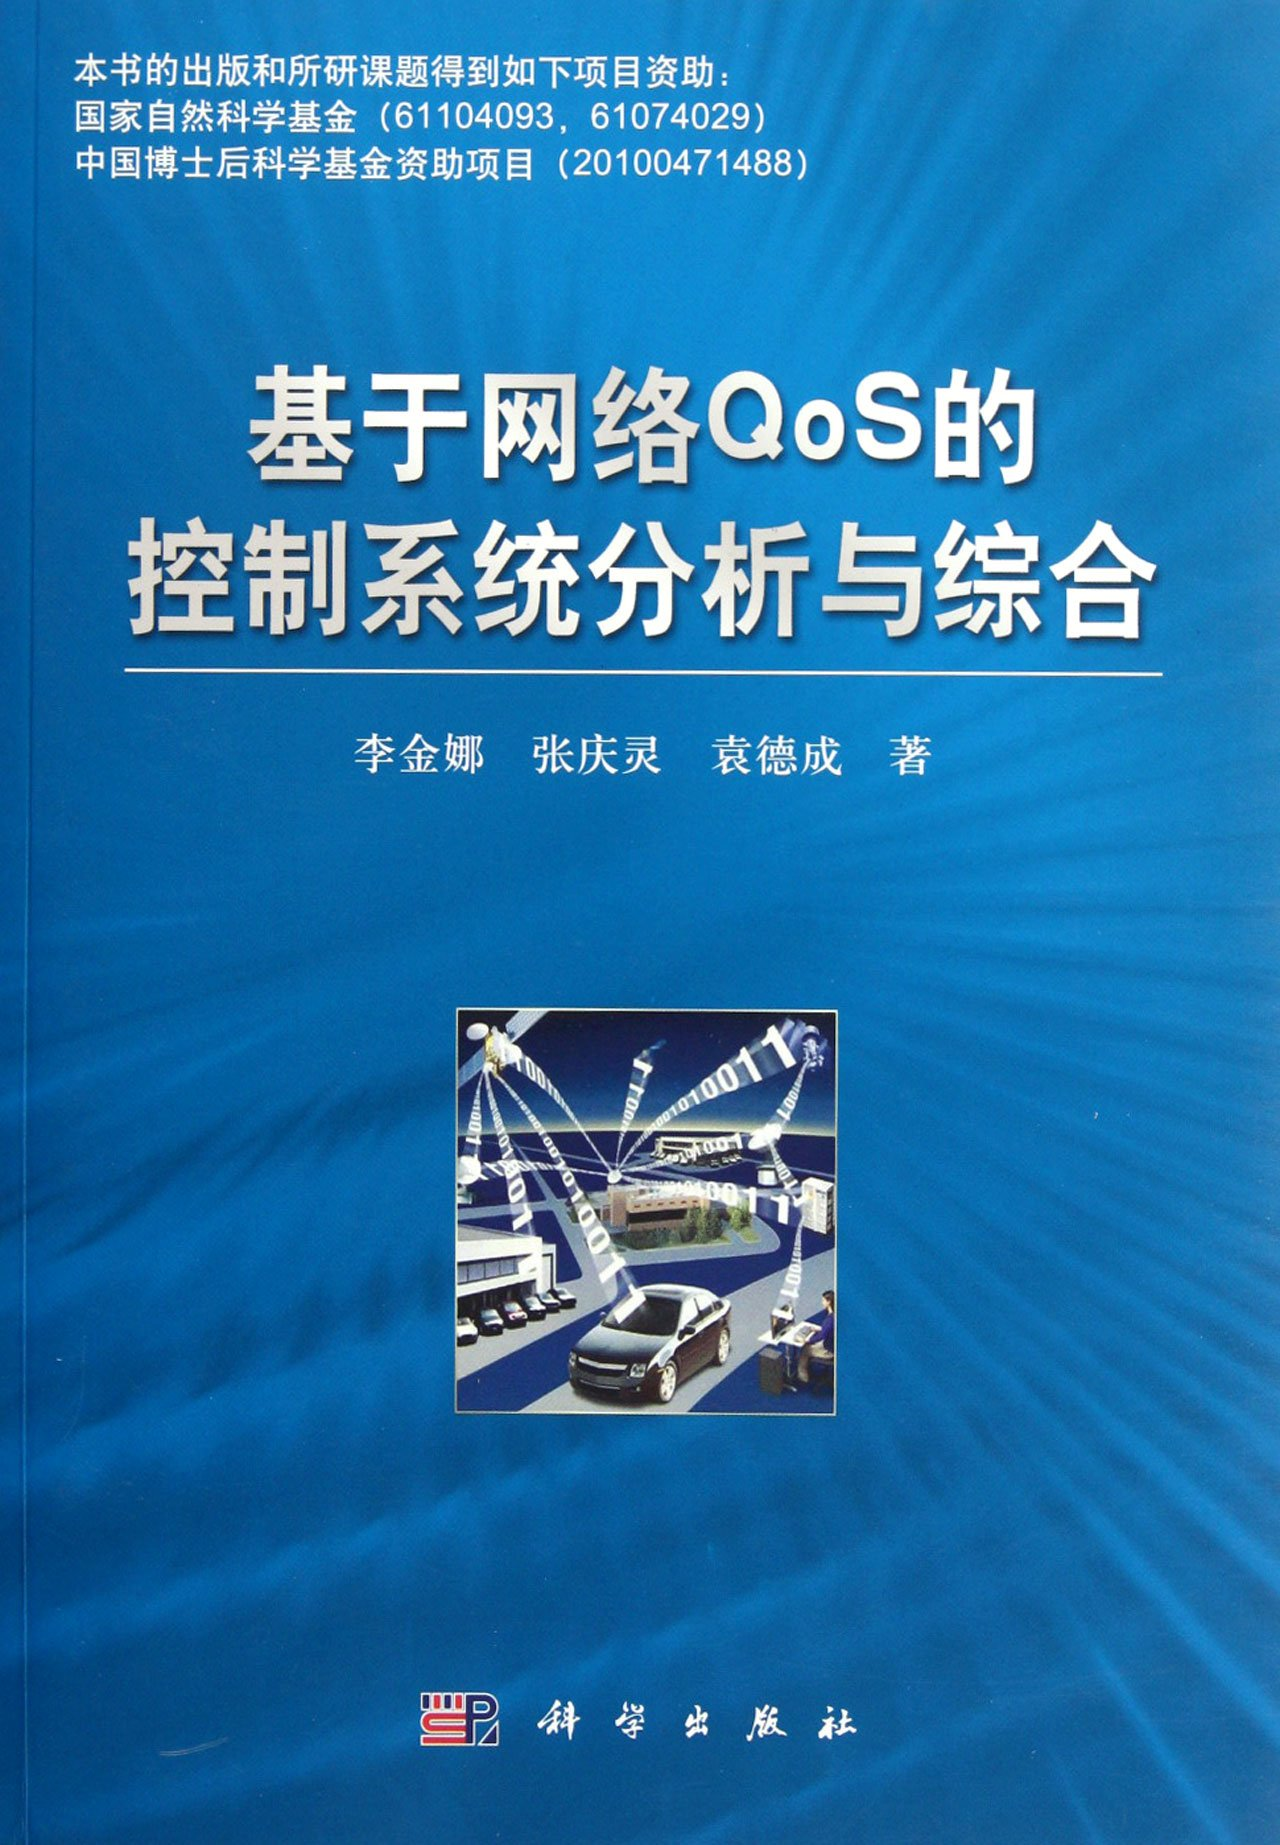 Analysis and Synthesis Control System on the Basis of Network QoS (Chinese Edition) ebook